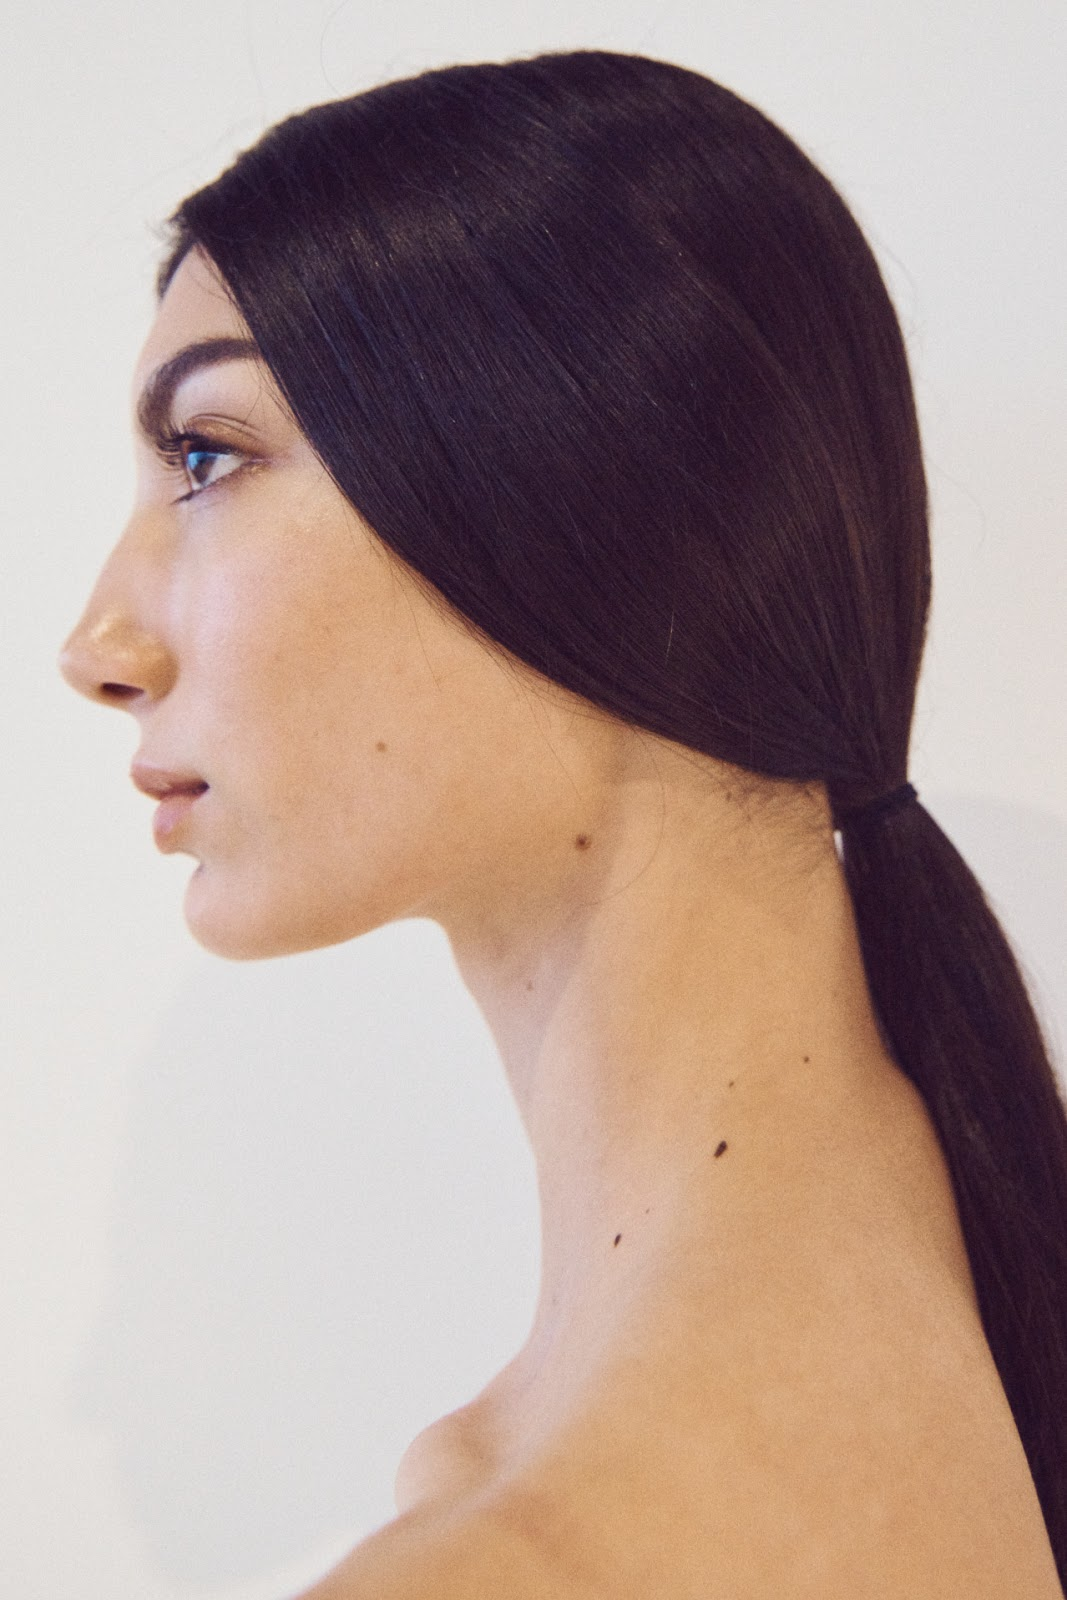 Woman with low ponytail at NYFW 2020